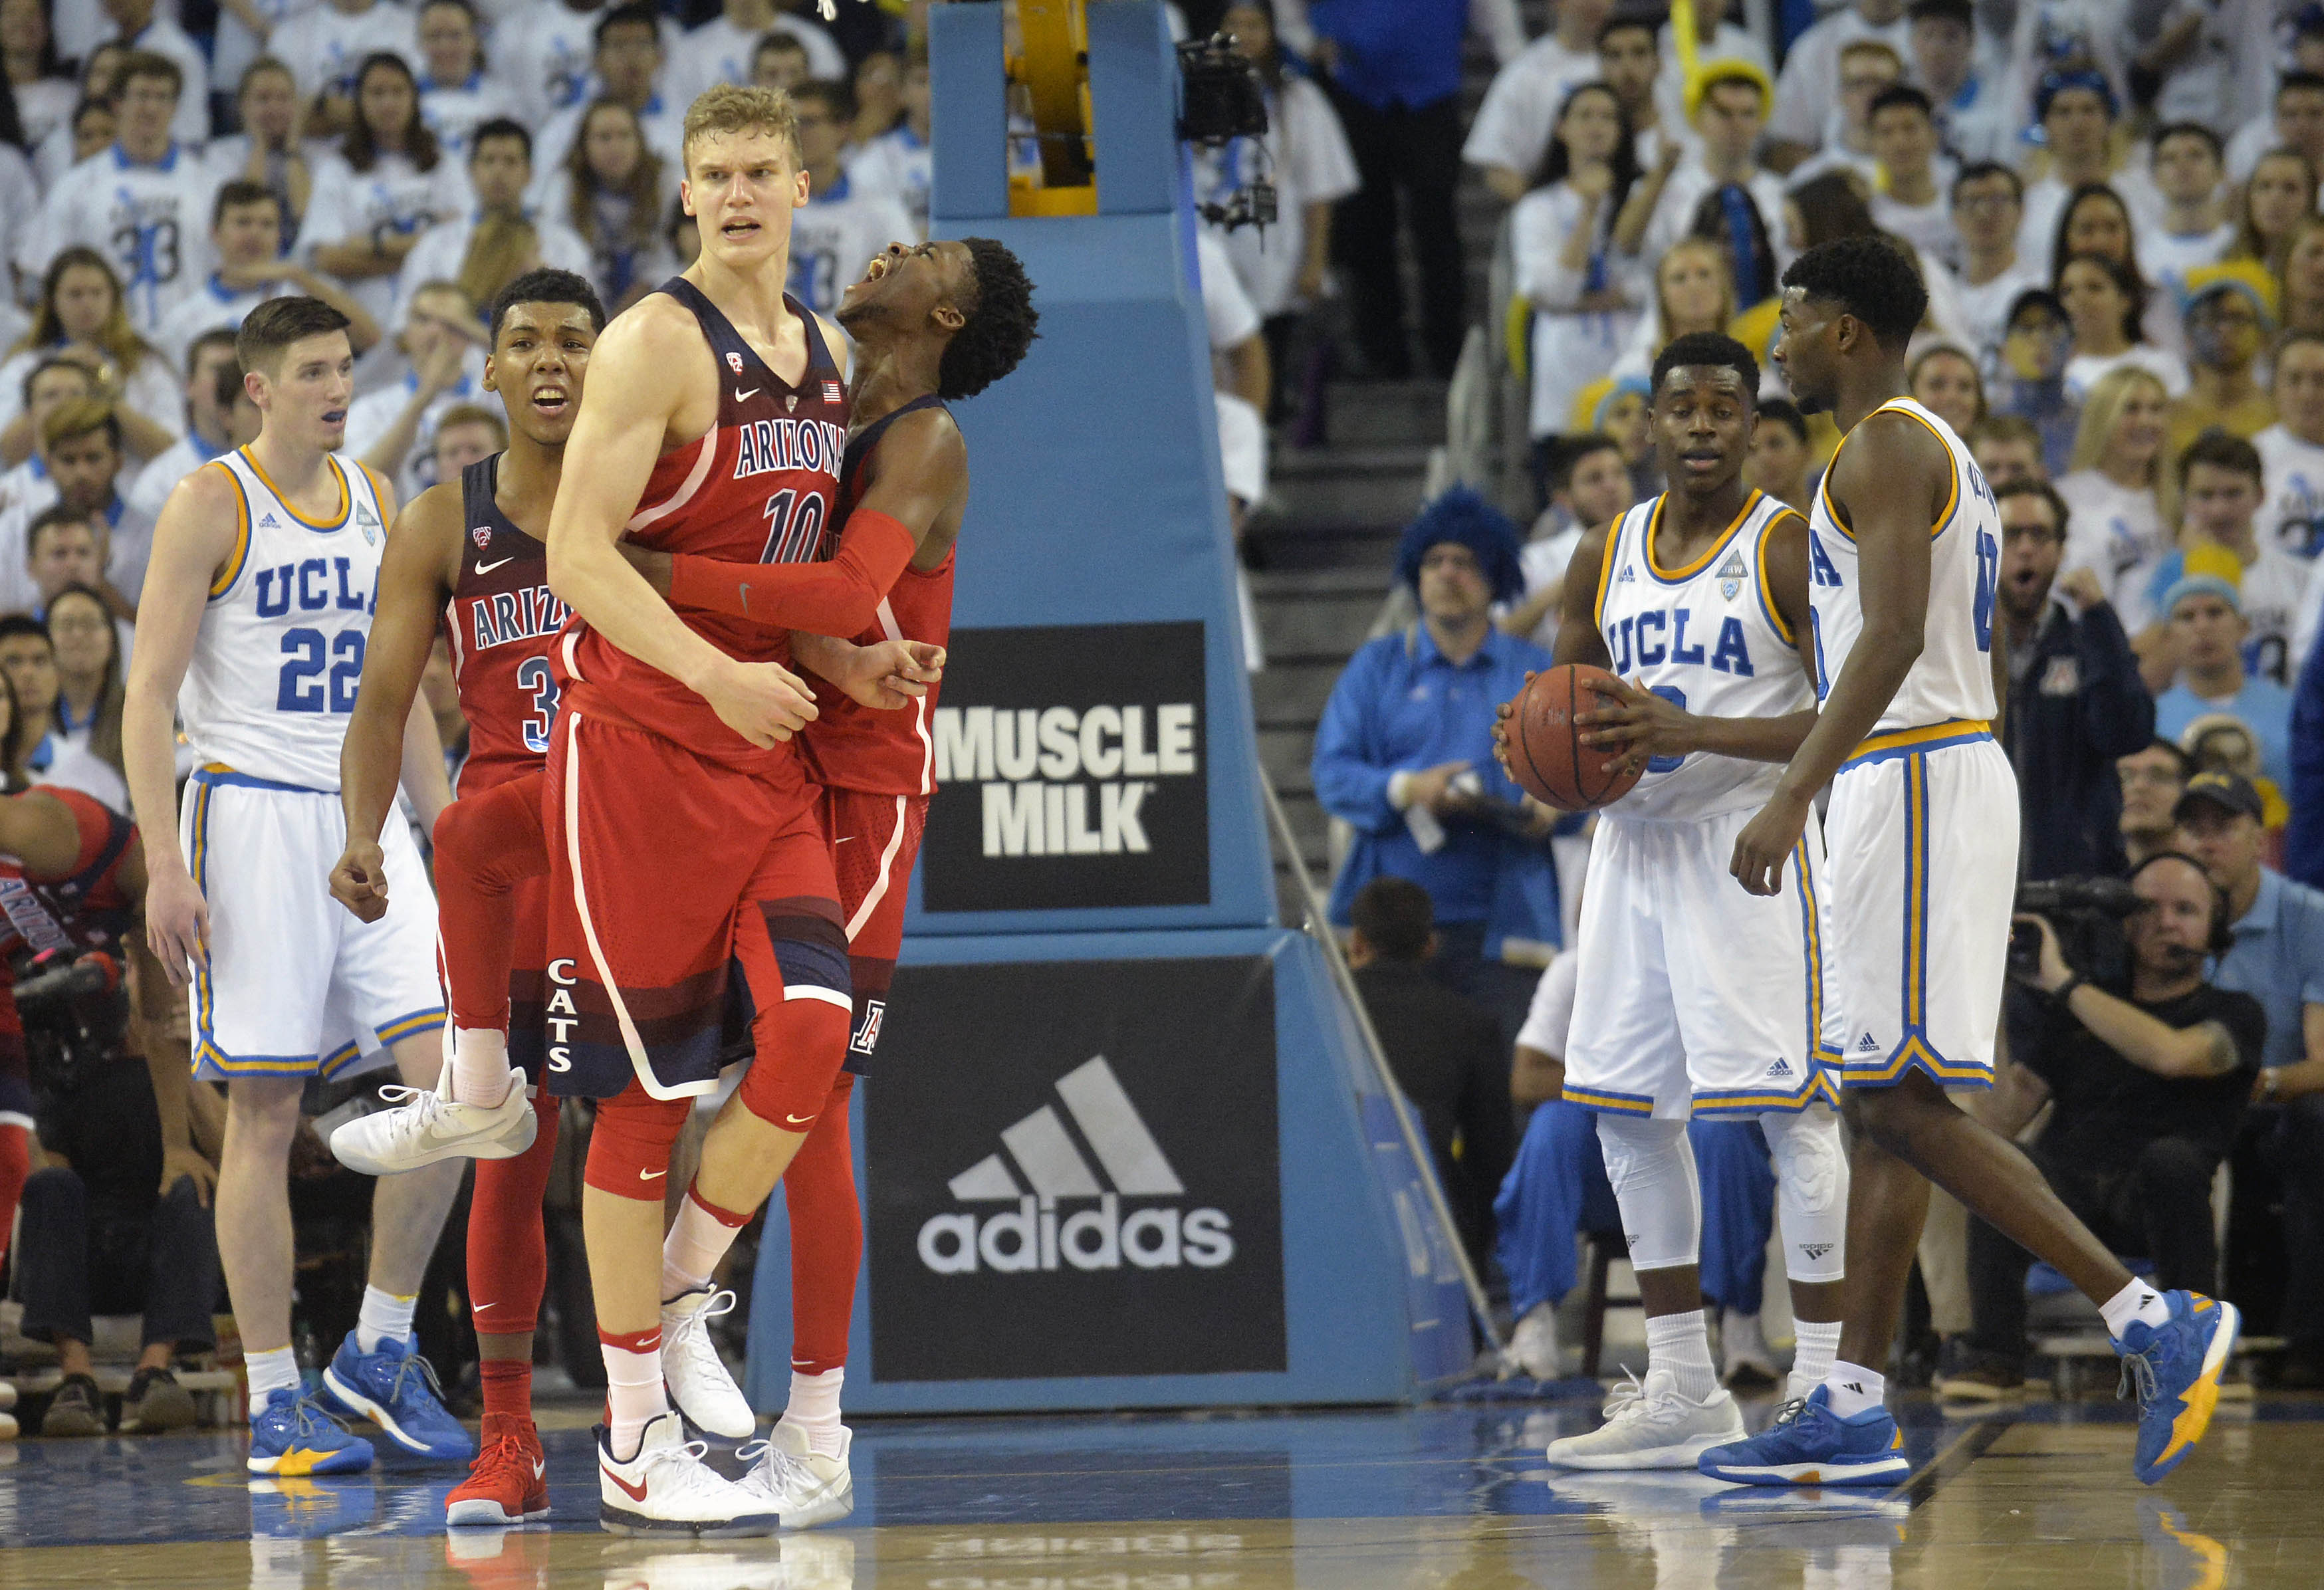 9828392-ncaa-basketball-arizona-at-ucla